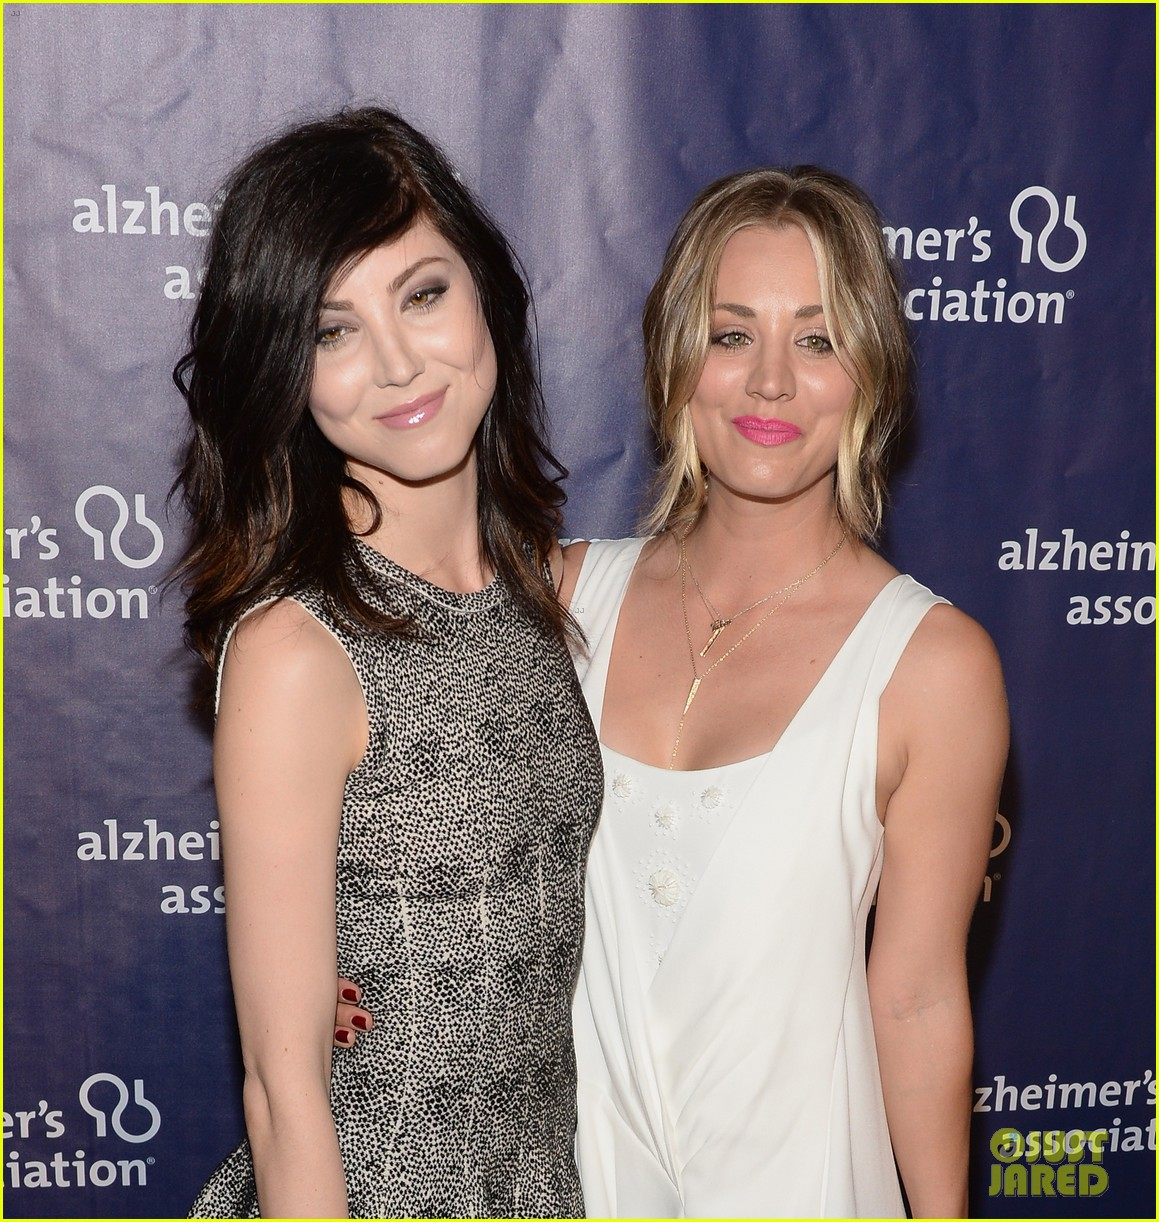 kaley cuoco attends a night at sardis with ryan sweeting sister briana 073079551